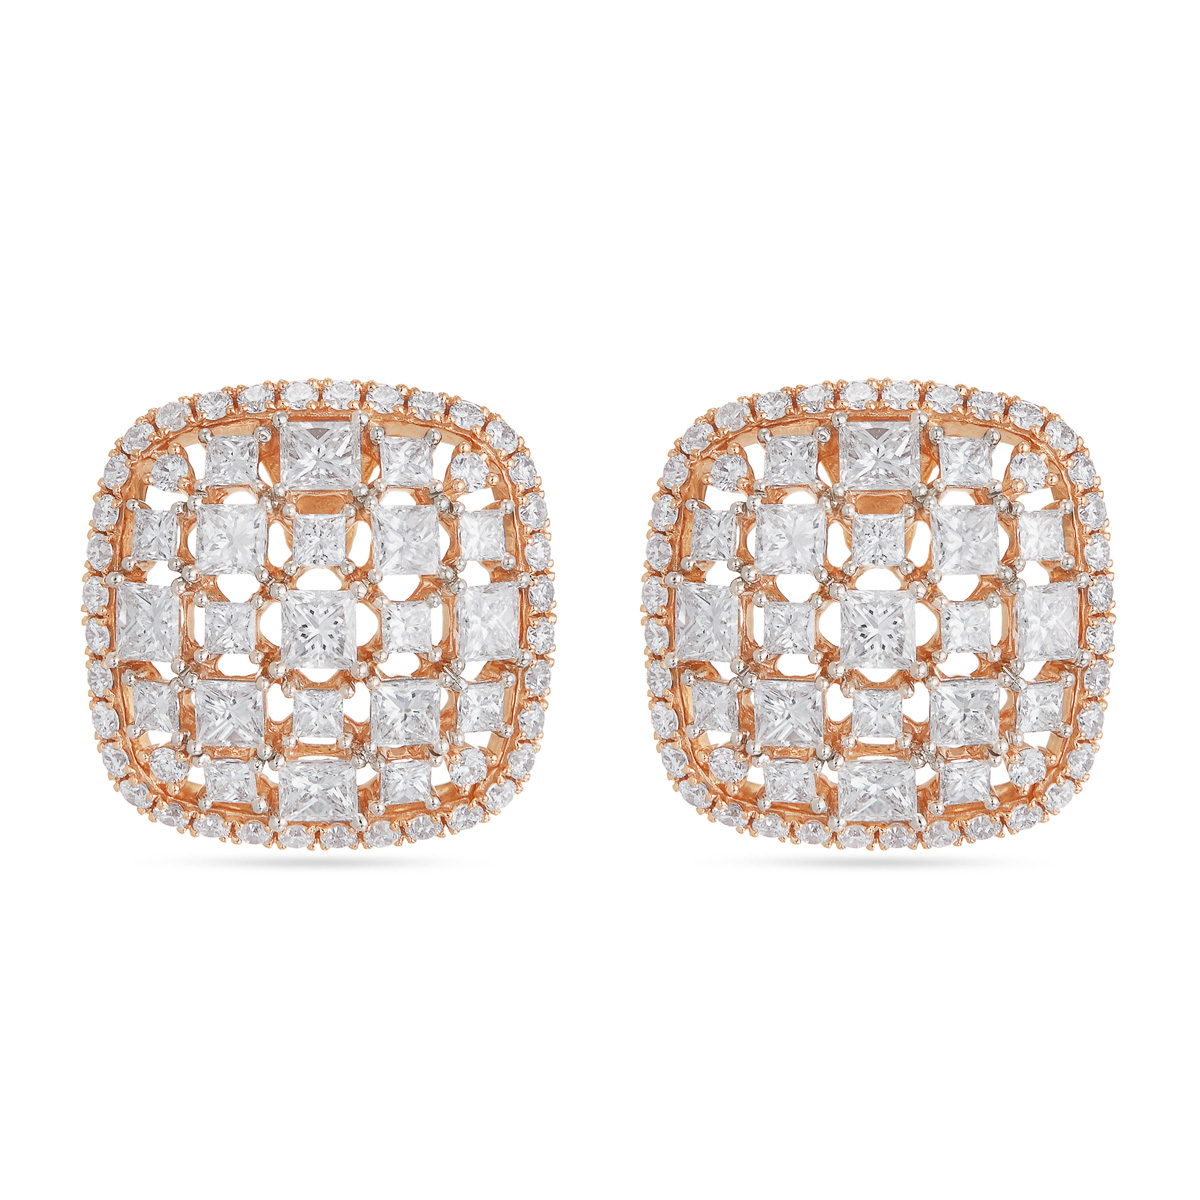 Fair and Square Diamond Stud